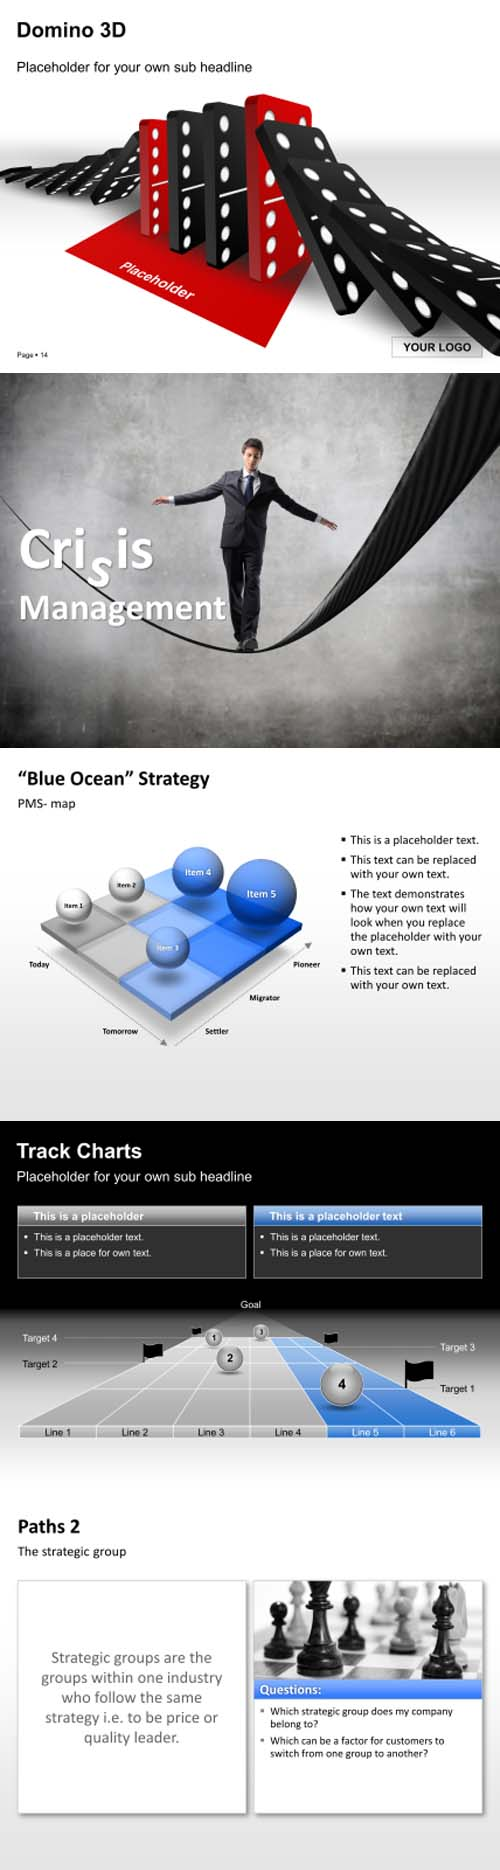 Attractive powerpoint templates for strategy managemet in business attractive powerpoint templates for strategy managemet in business presentations business powerpoint toneelgroepblik Images